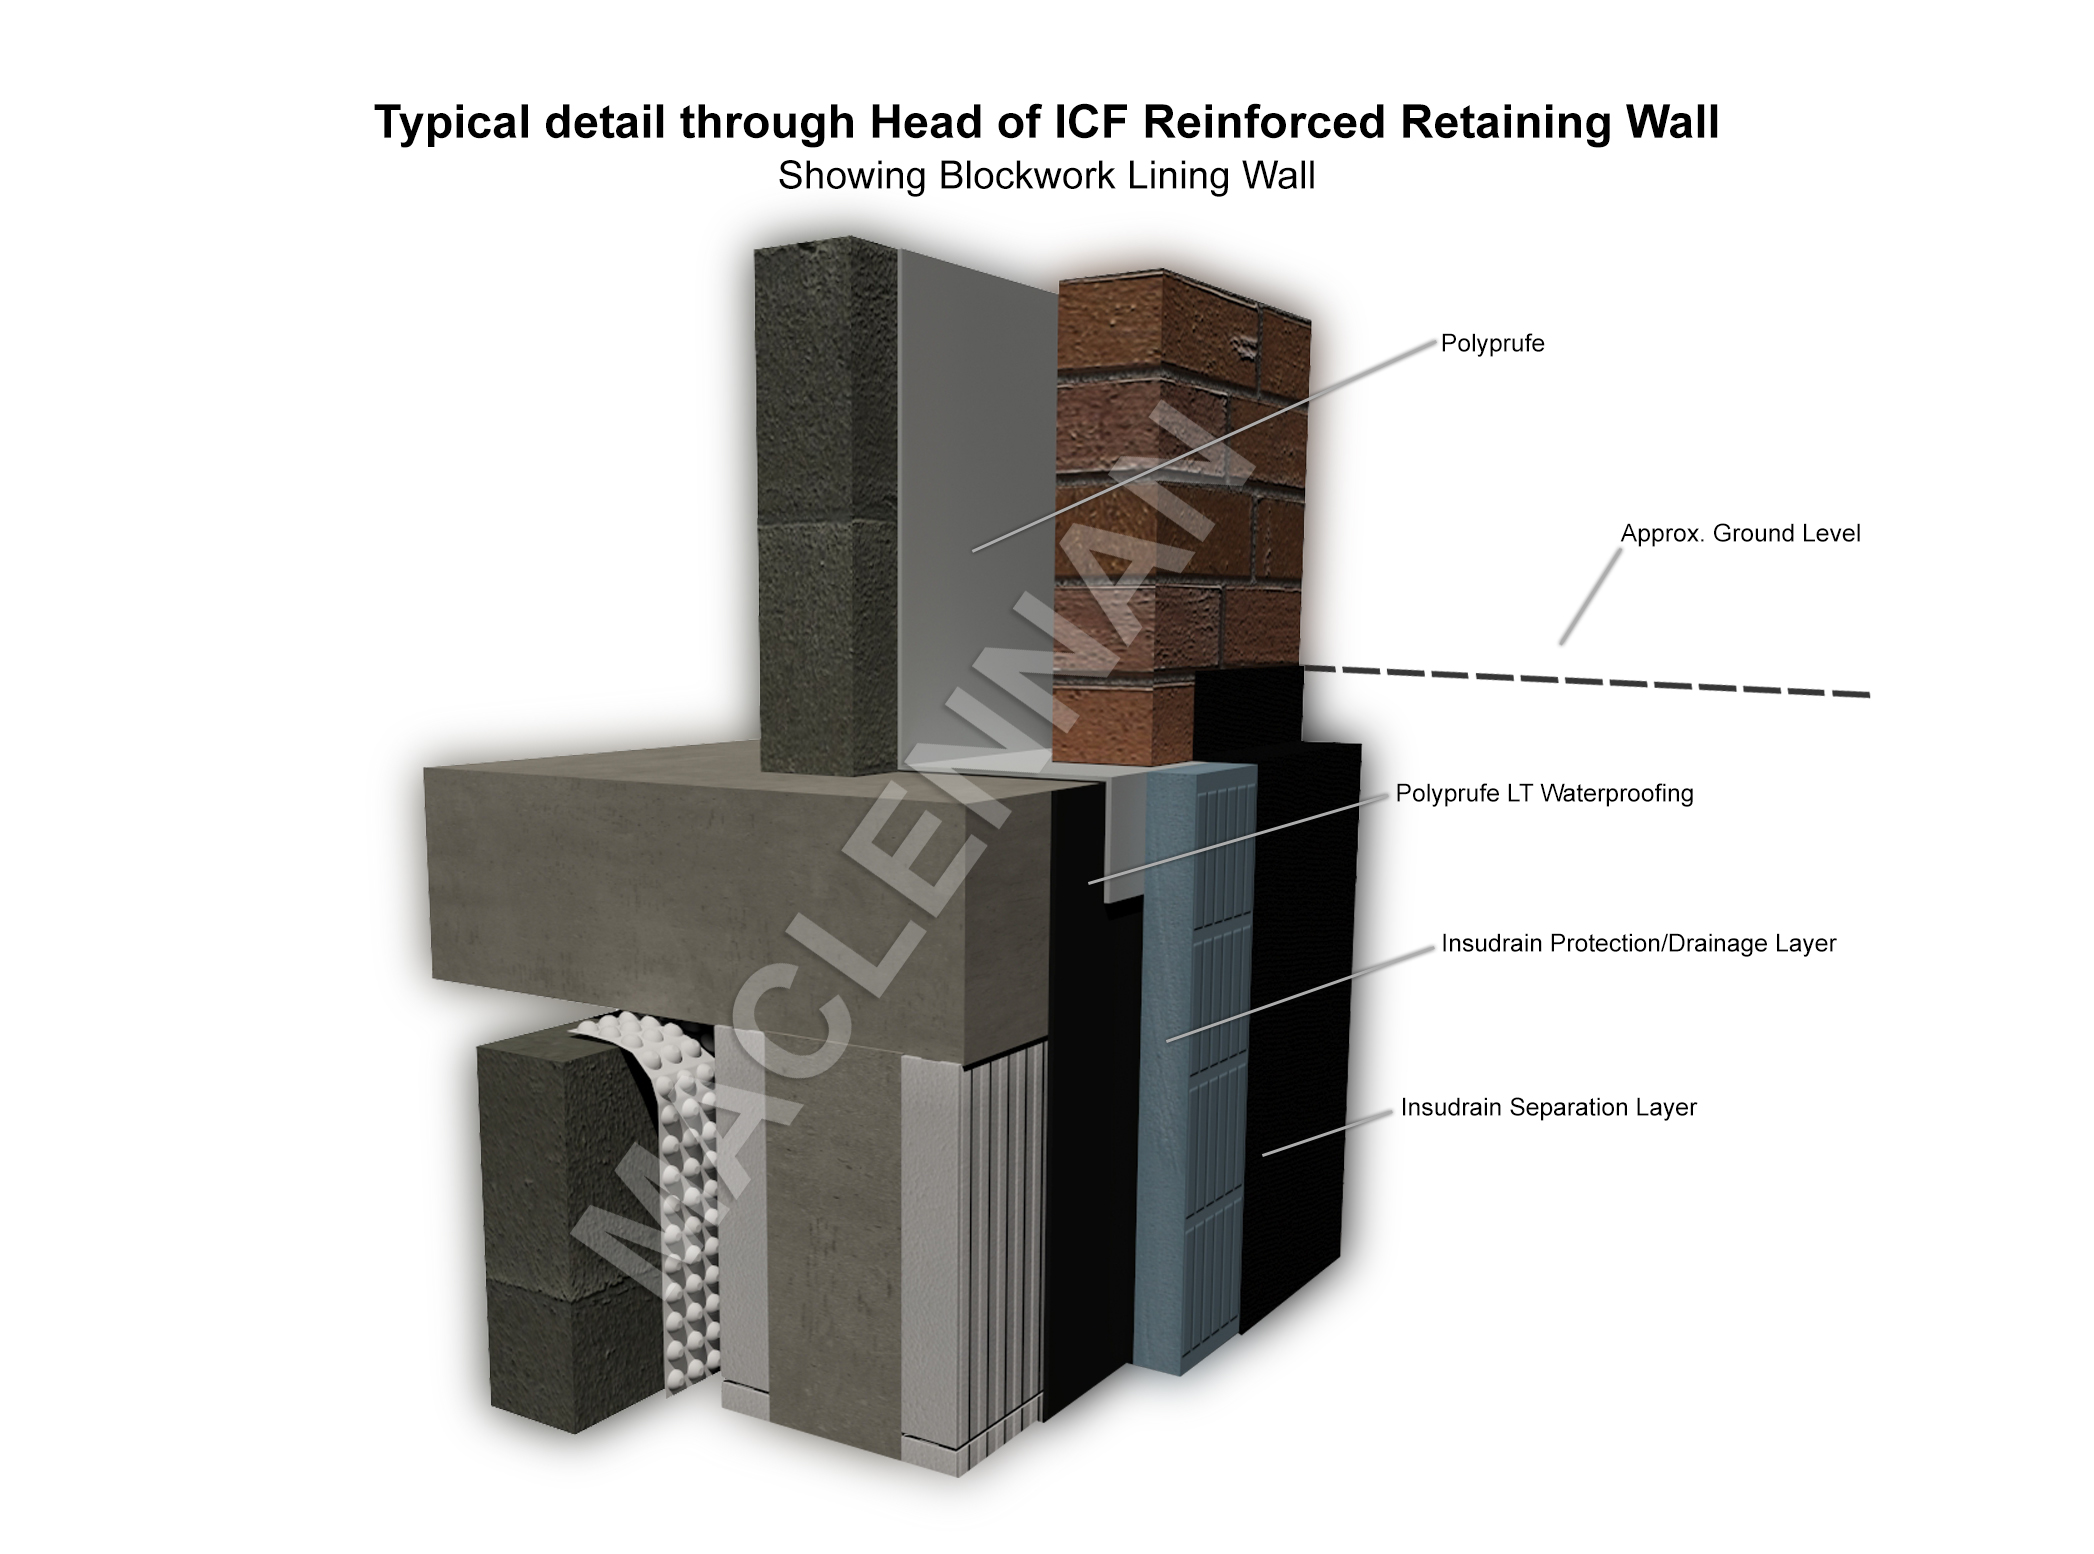 Typical detail through head of ICF retaining wall